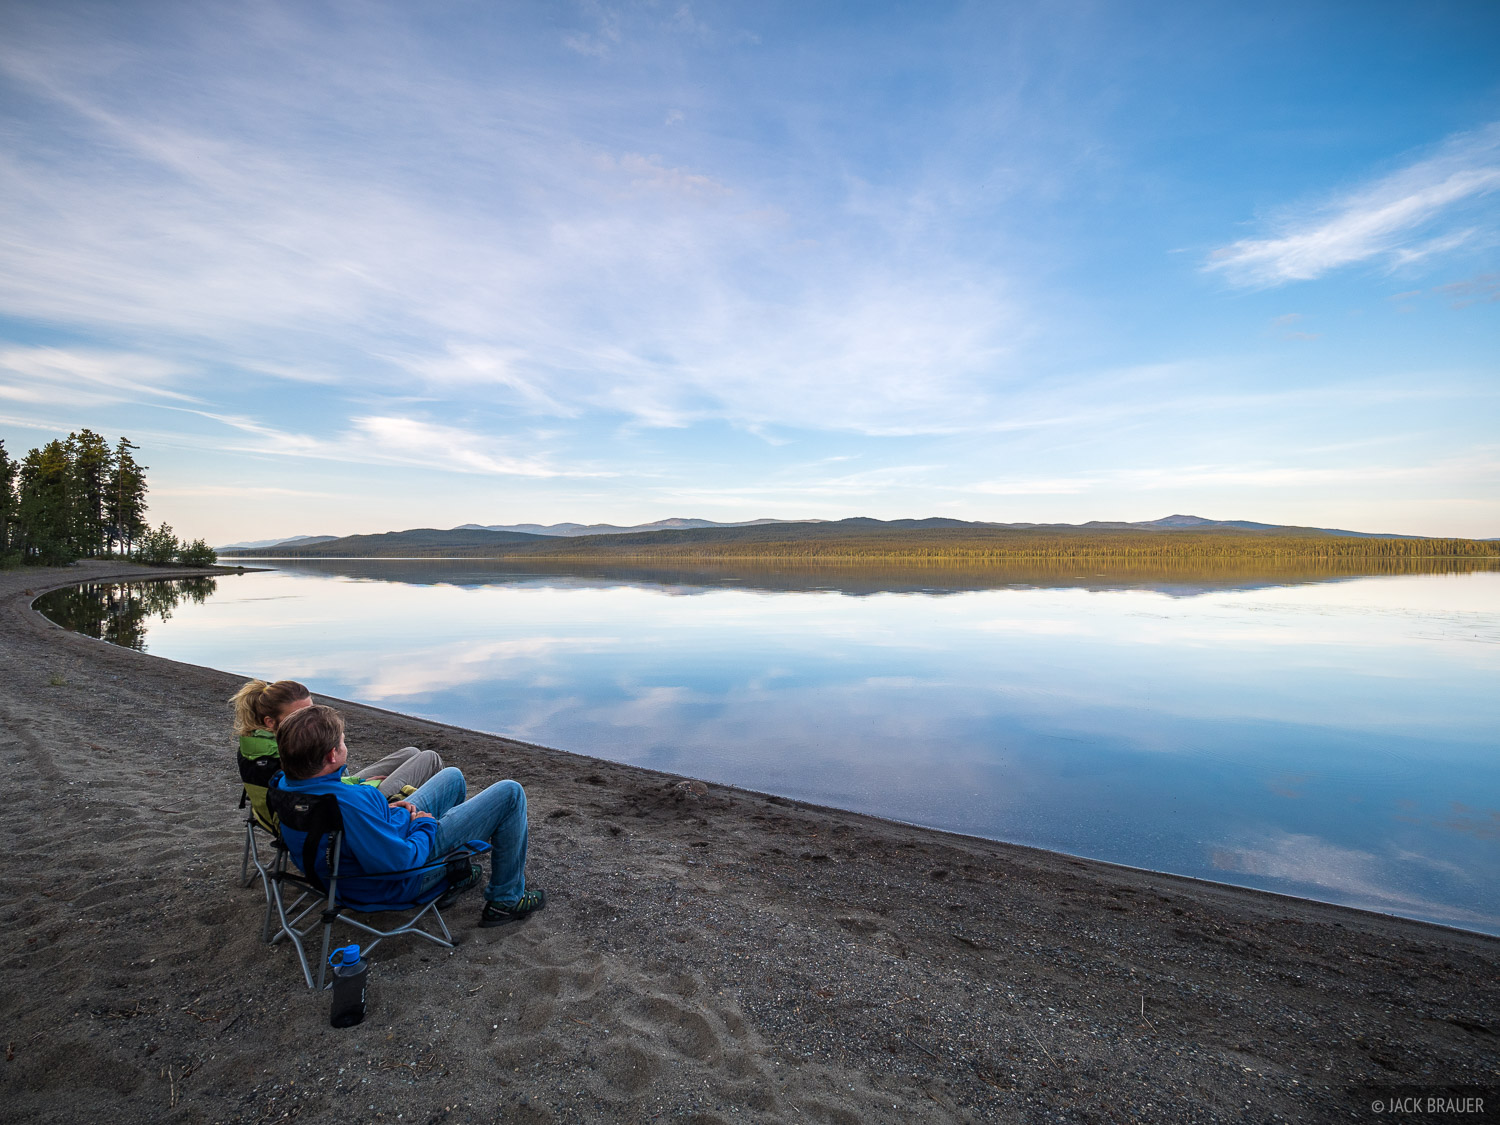 Continuing the seemingly never-ending drive north and west into the Yukon, we stopped for an evening at Morley Lake, a huge lake...